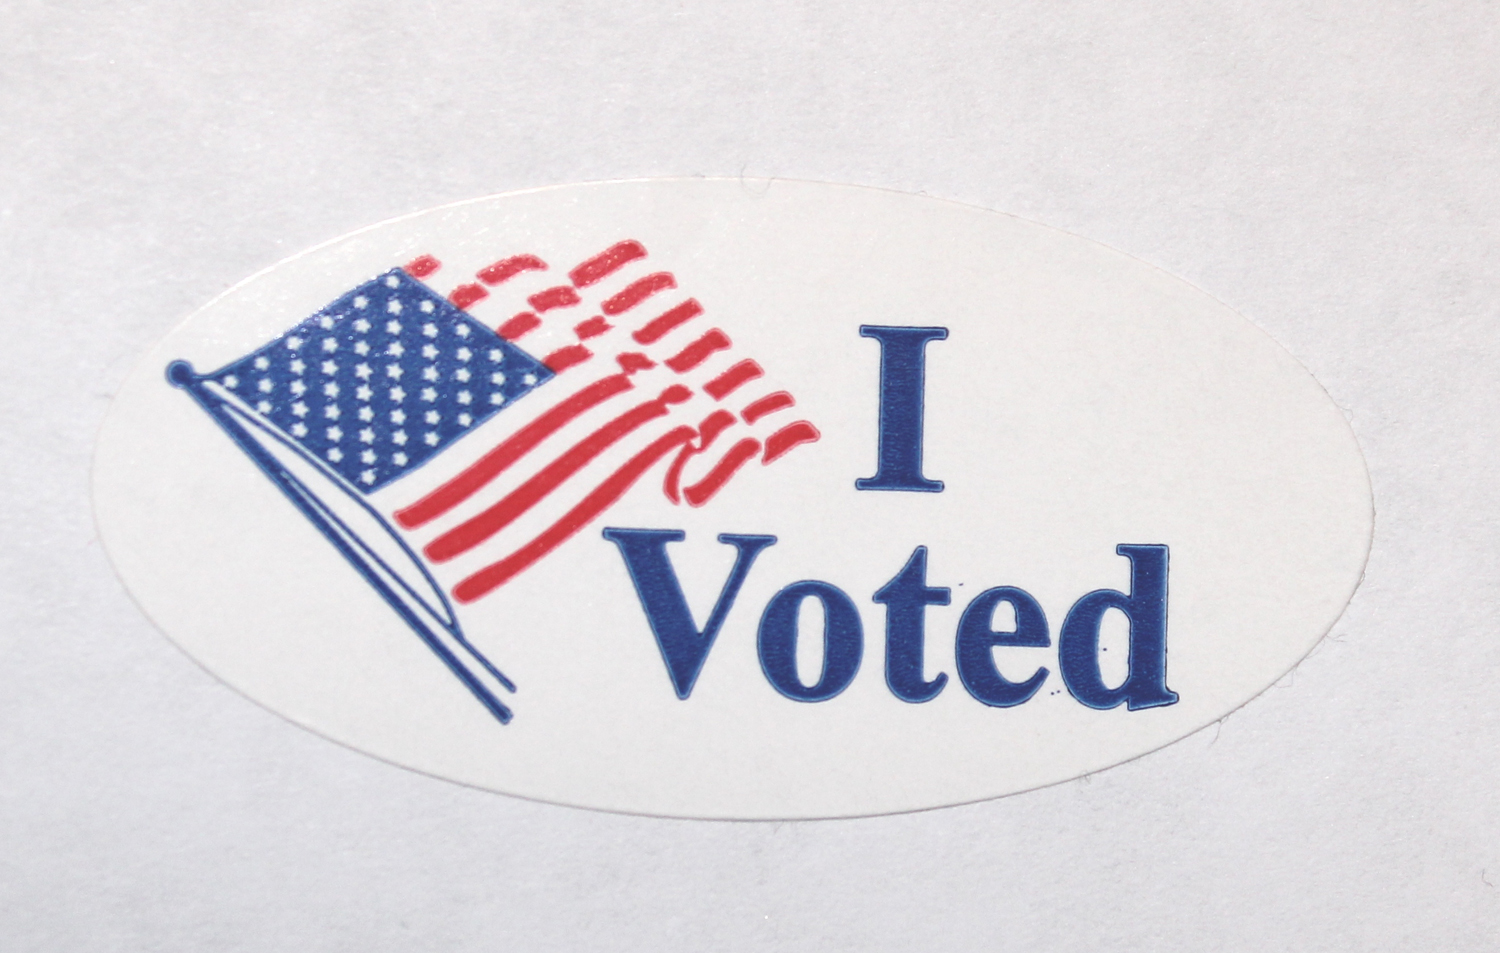 The municipal elections occurred across the state on Tuesday during the Pennsylvania primary elections.